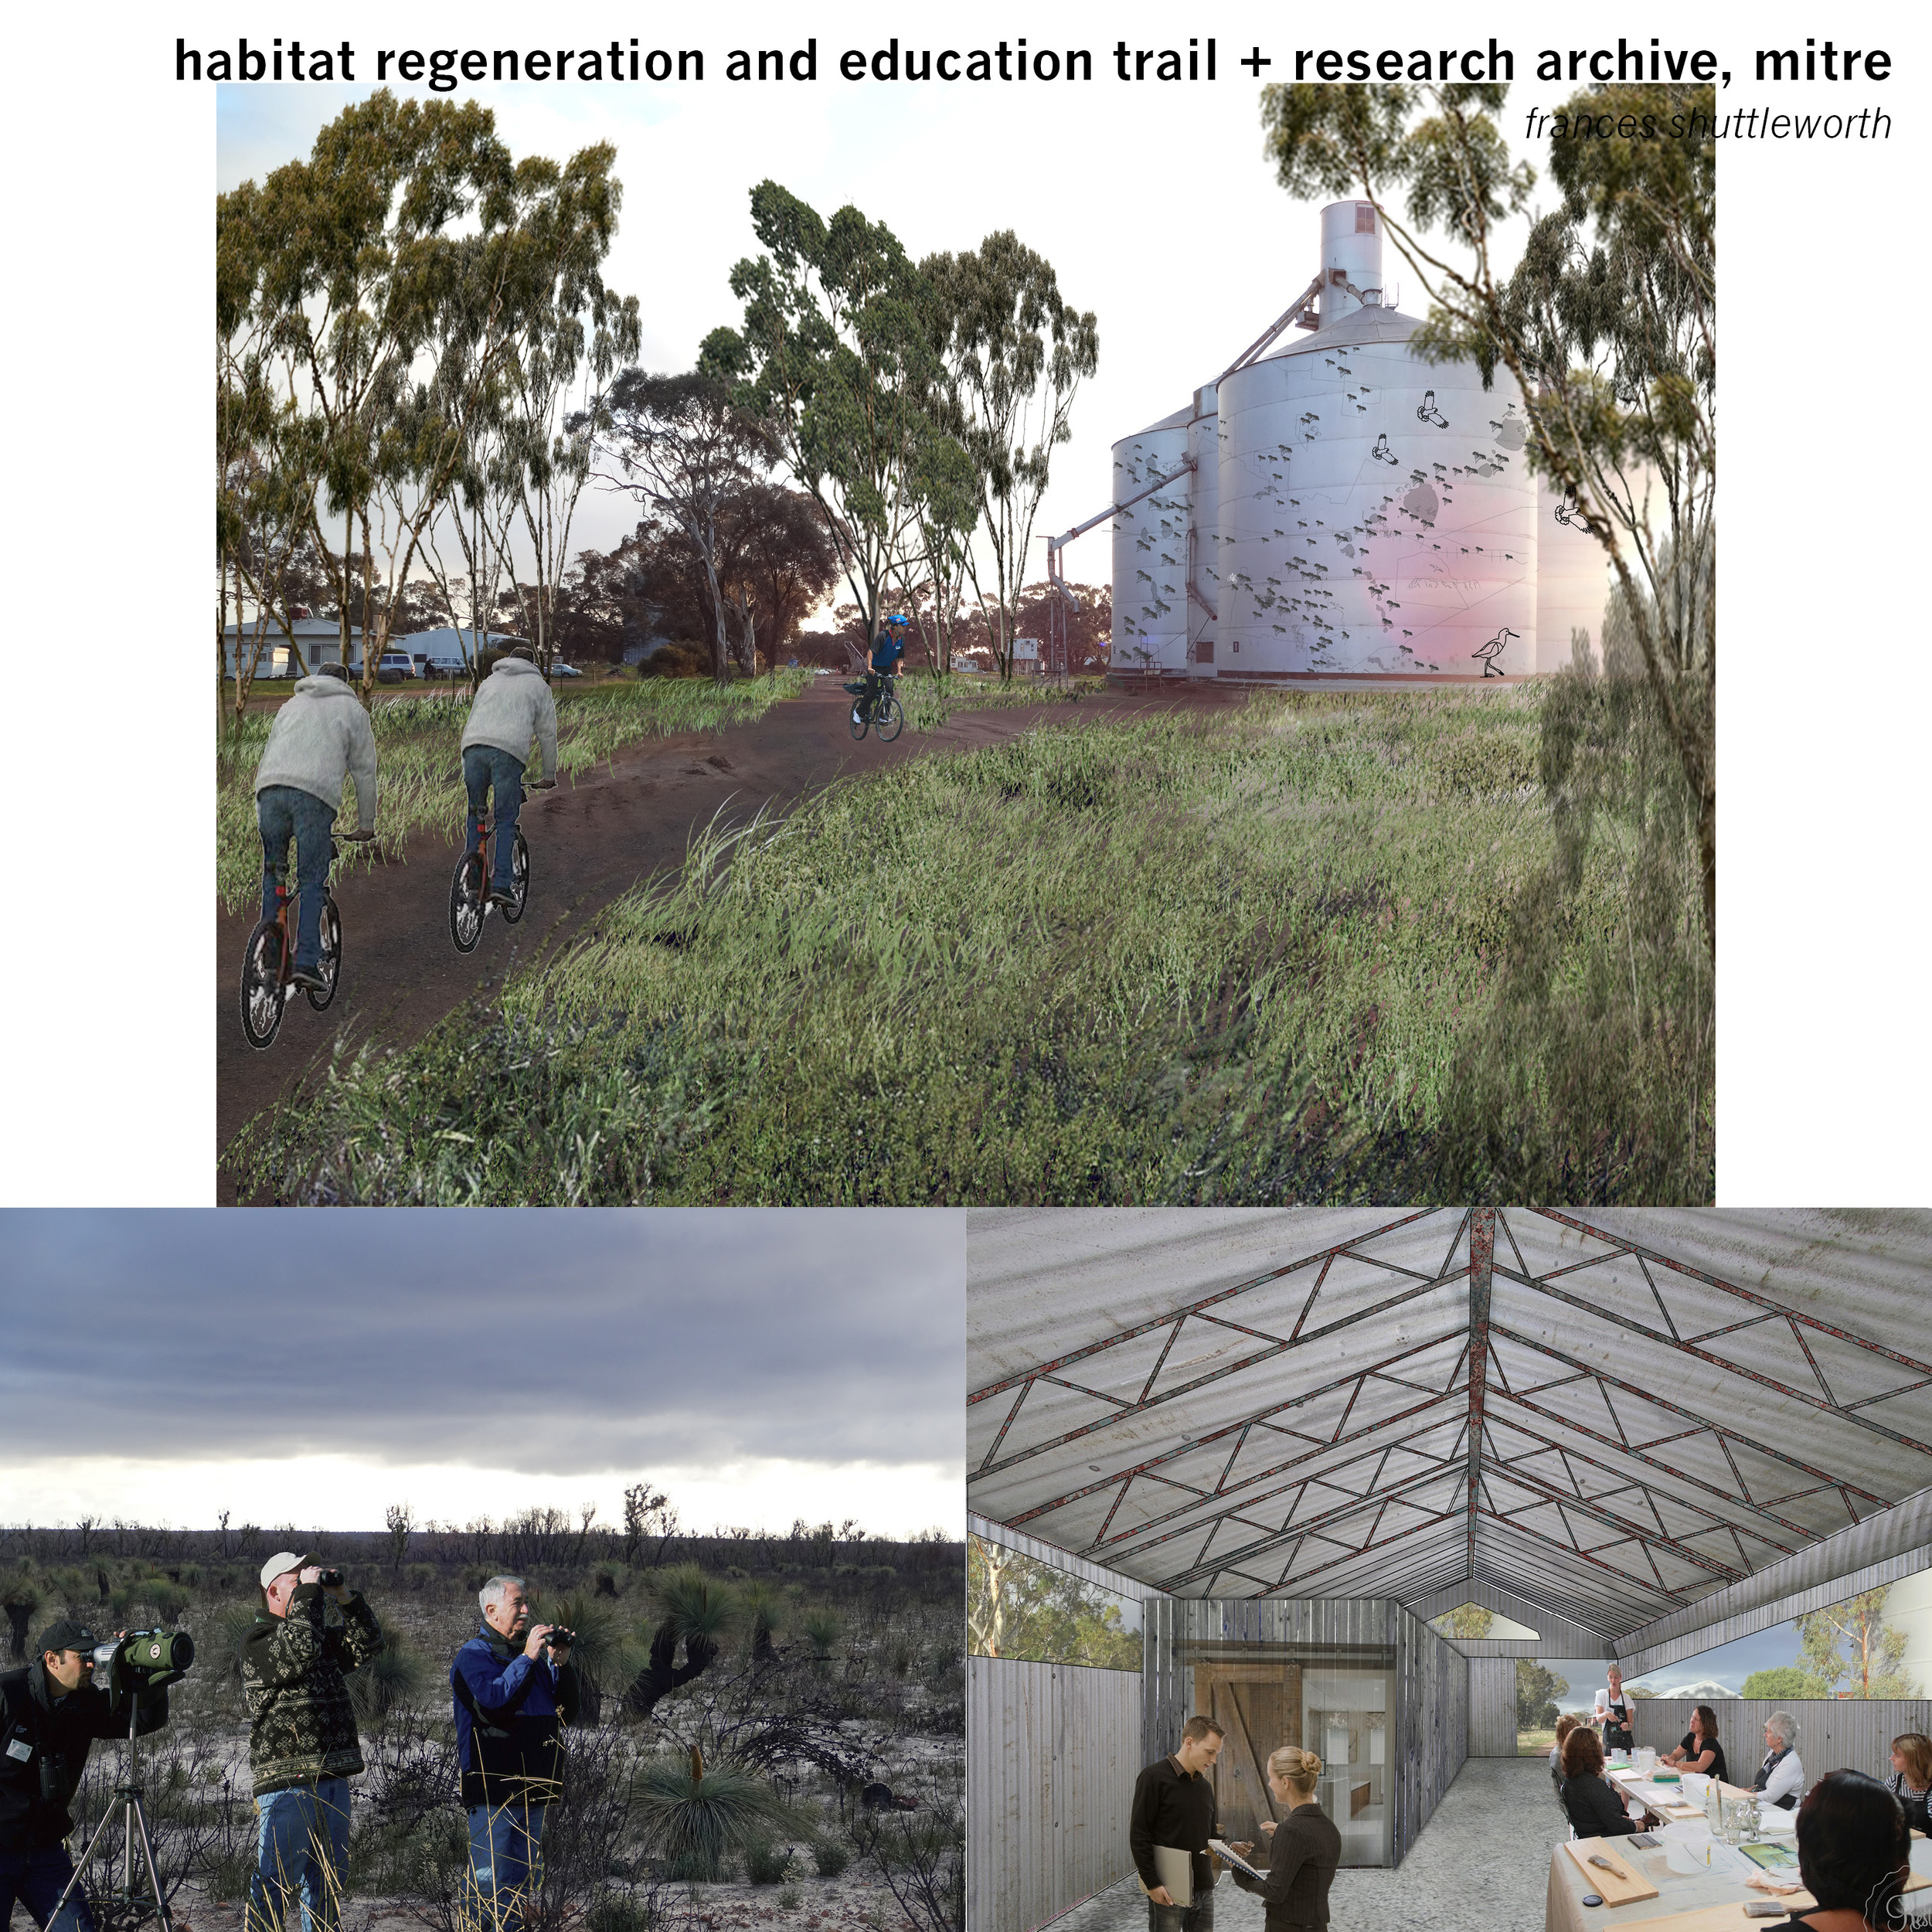 The shed in Mitre is converted into a research outpost for ornithological and environmental organisations conducting fieldwork and assessments in the Wimmera region, researchers and tourists contribute their own photographs and observations to an archive which is digitally projected onto the silos in a constantly evolving exhibition.